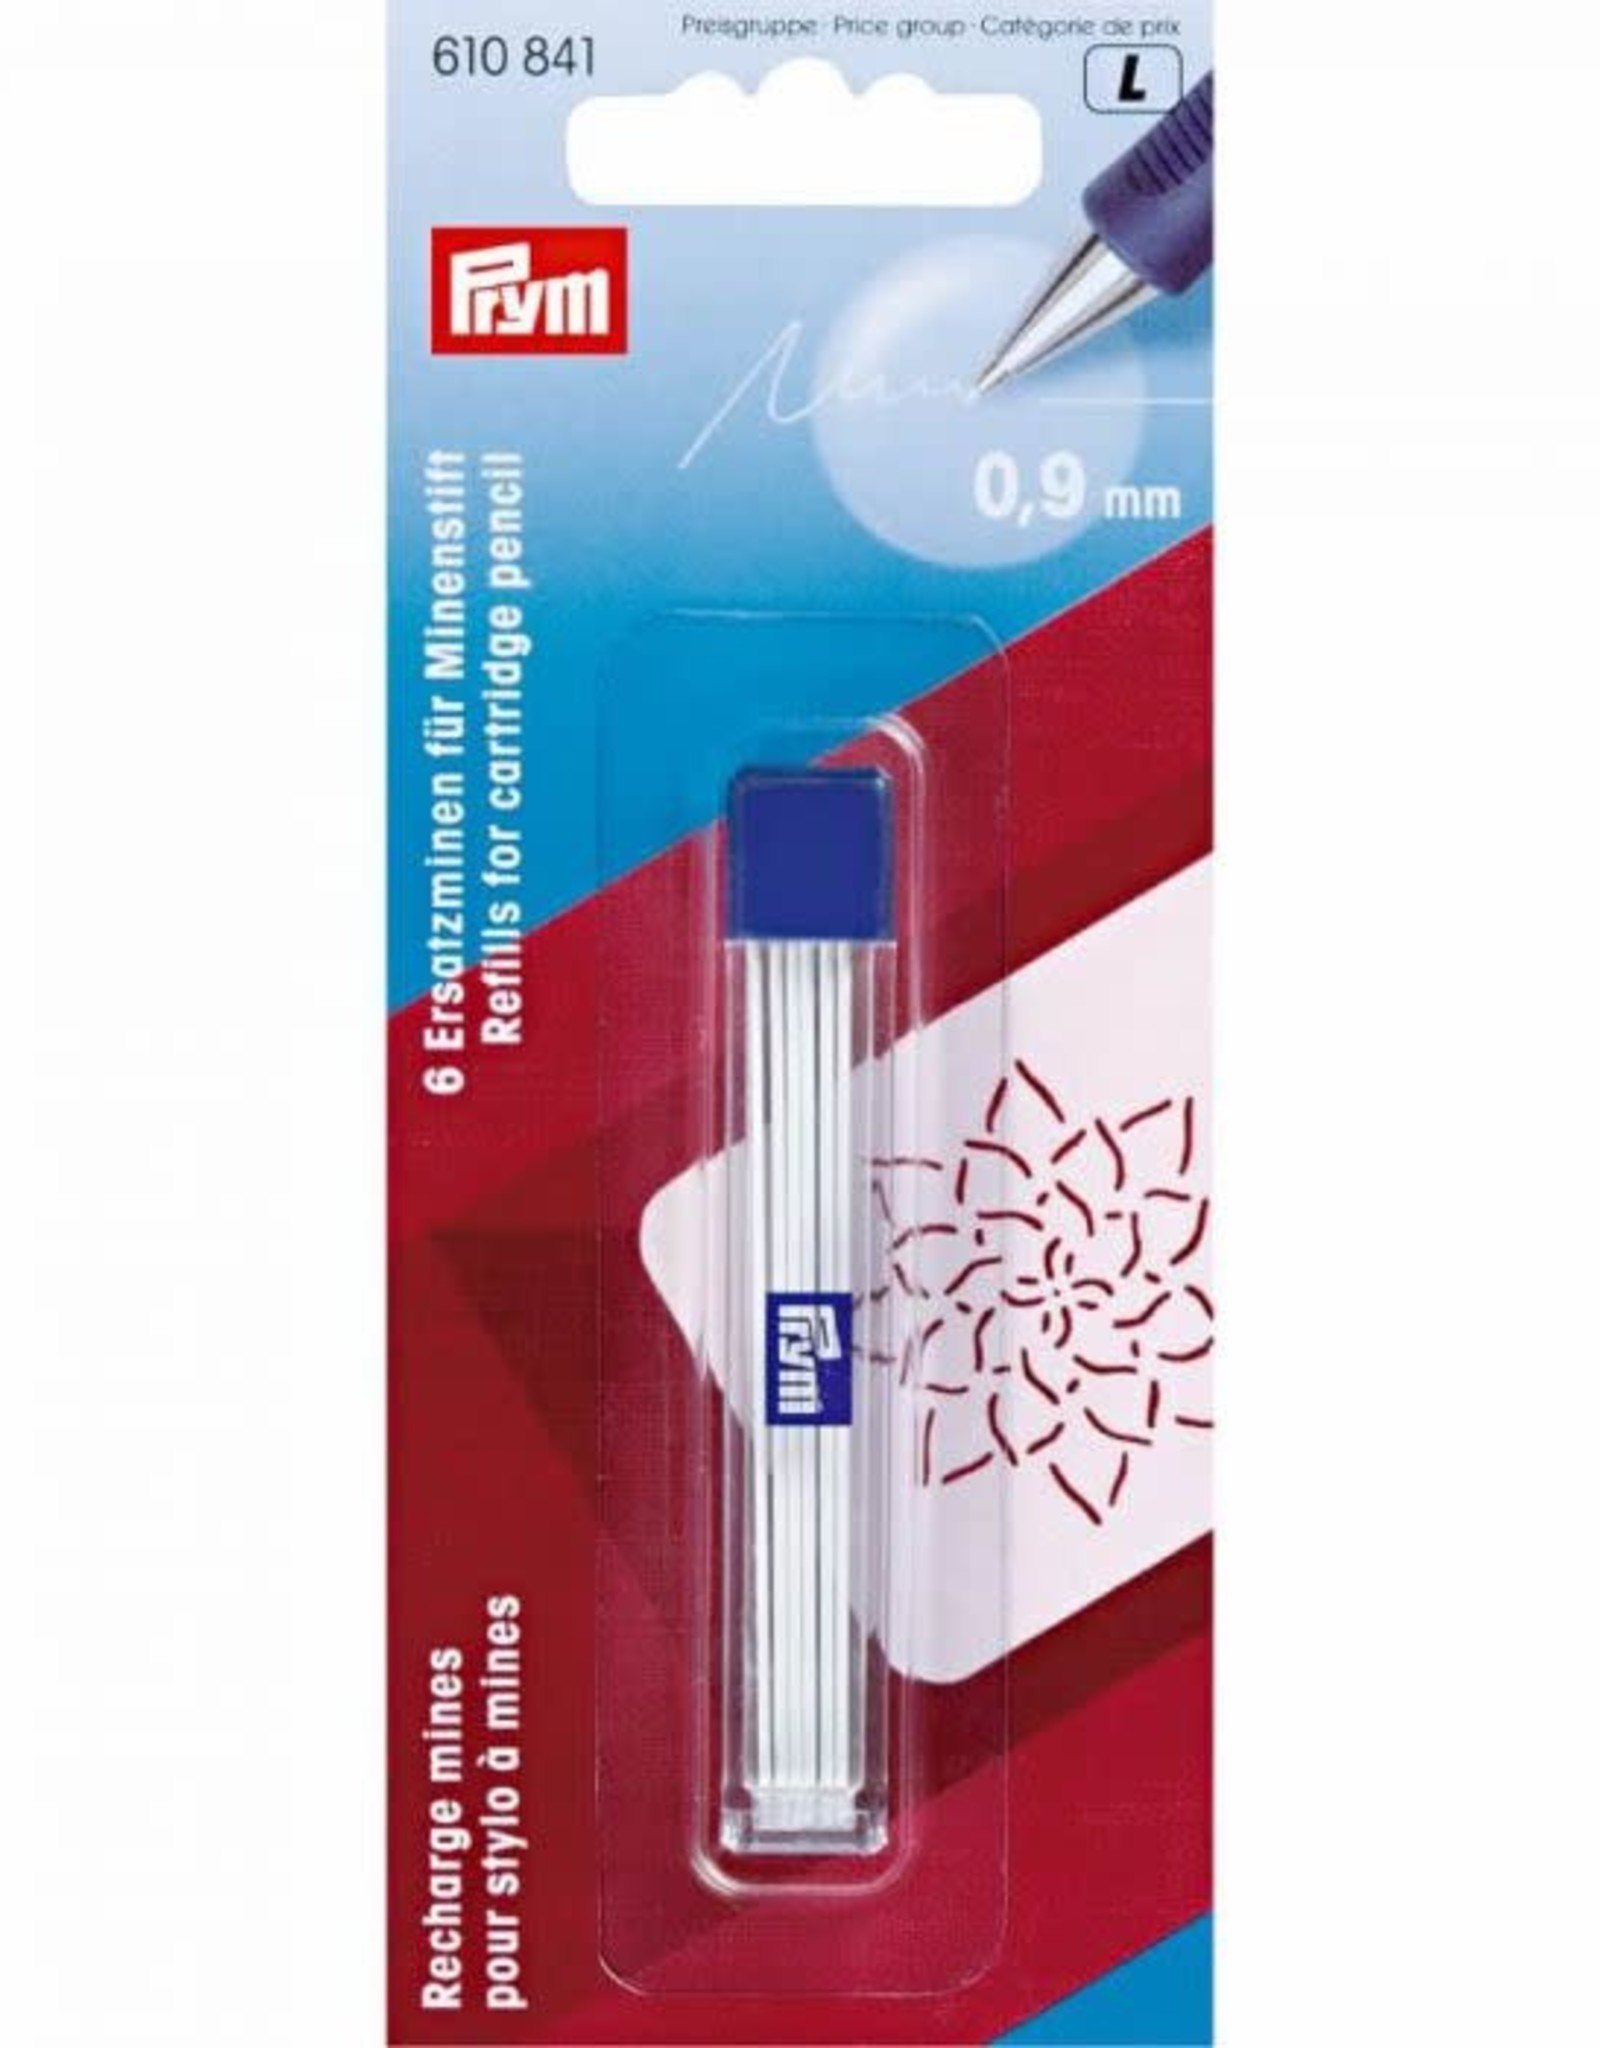 Prym Prym 610.841 - Vulling potlood - Wit